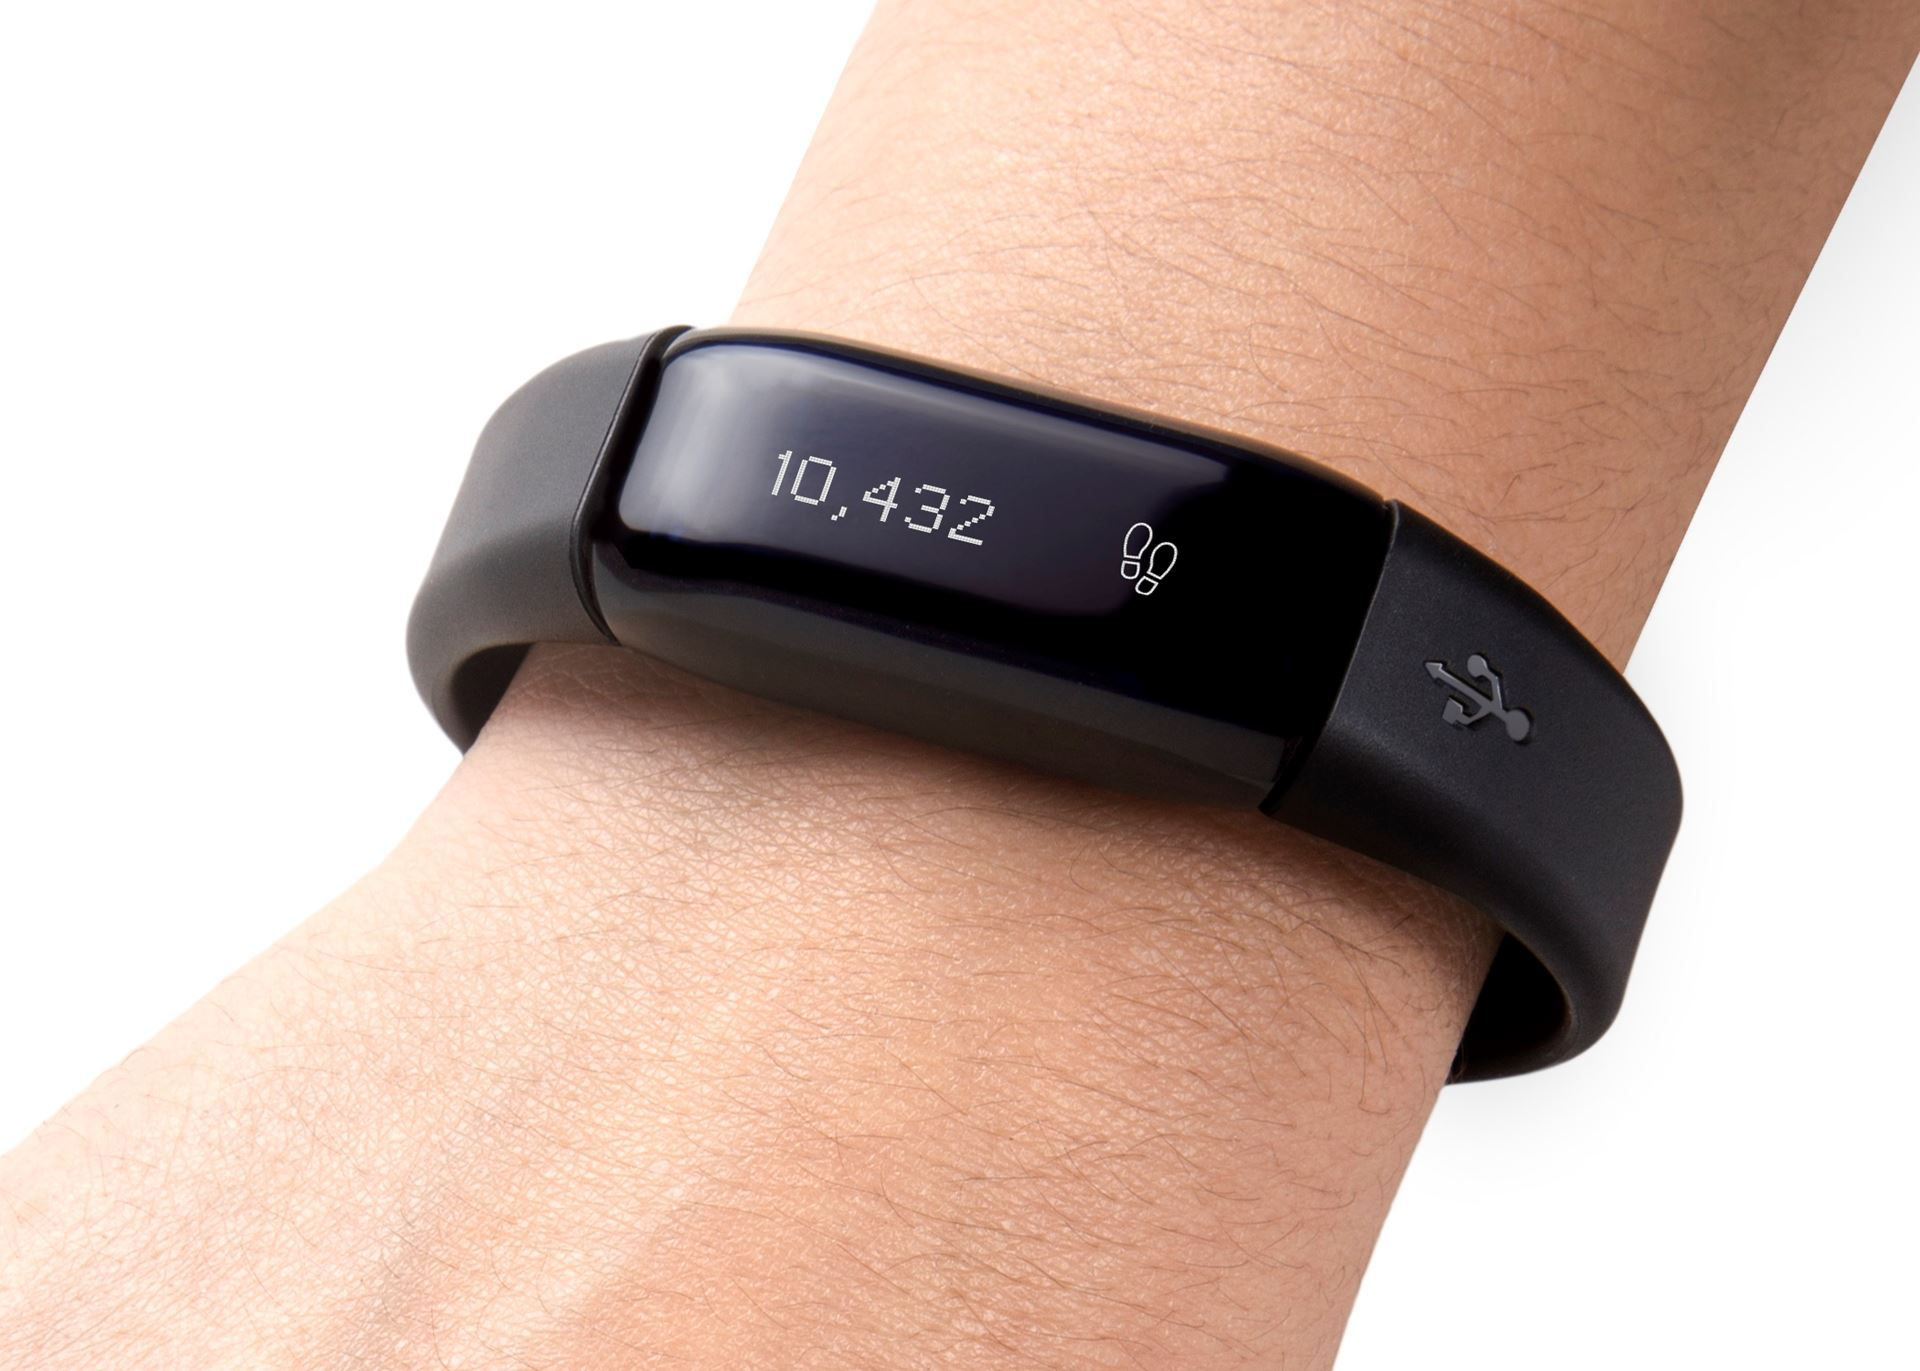 fitmax smart bracelet store home max buzz 5790